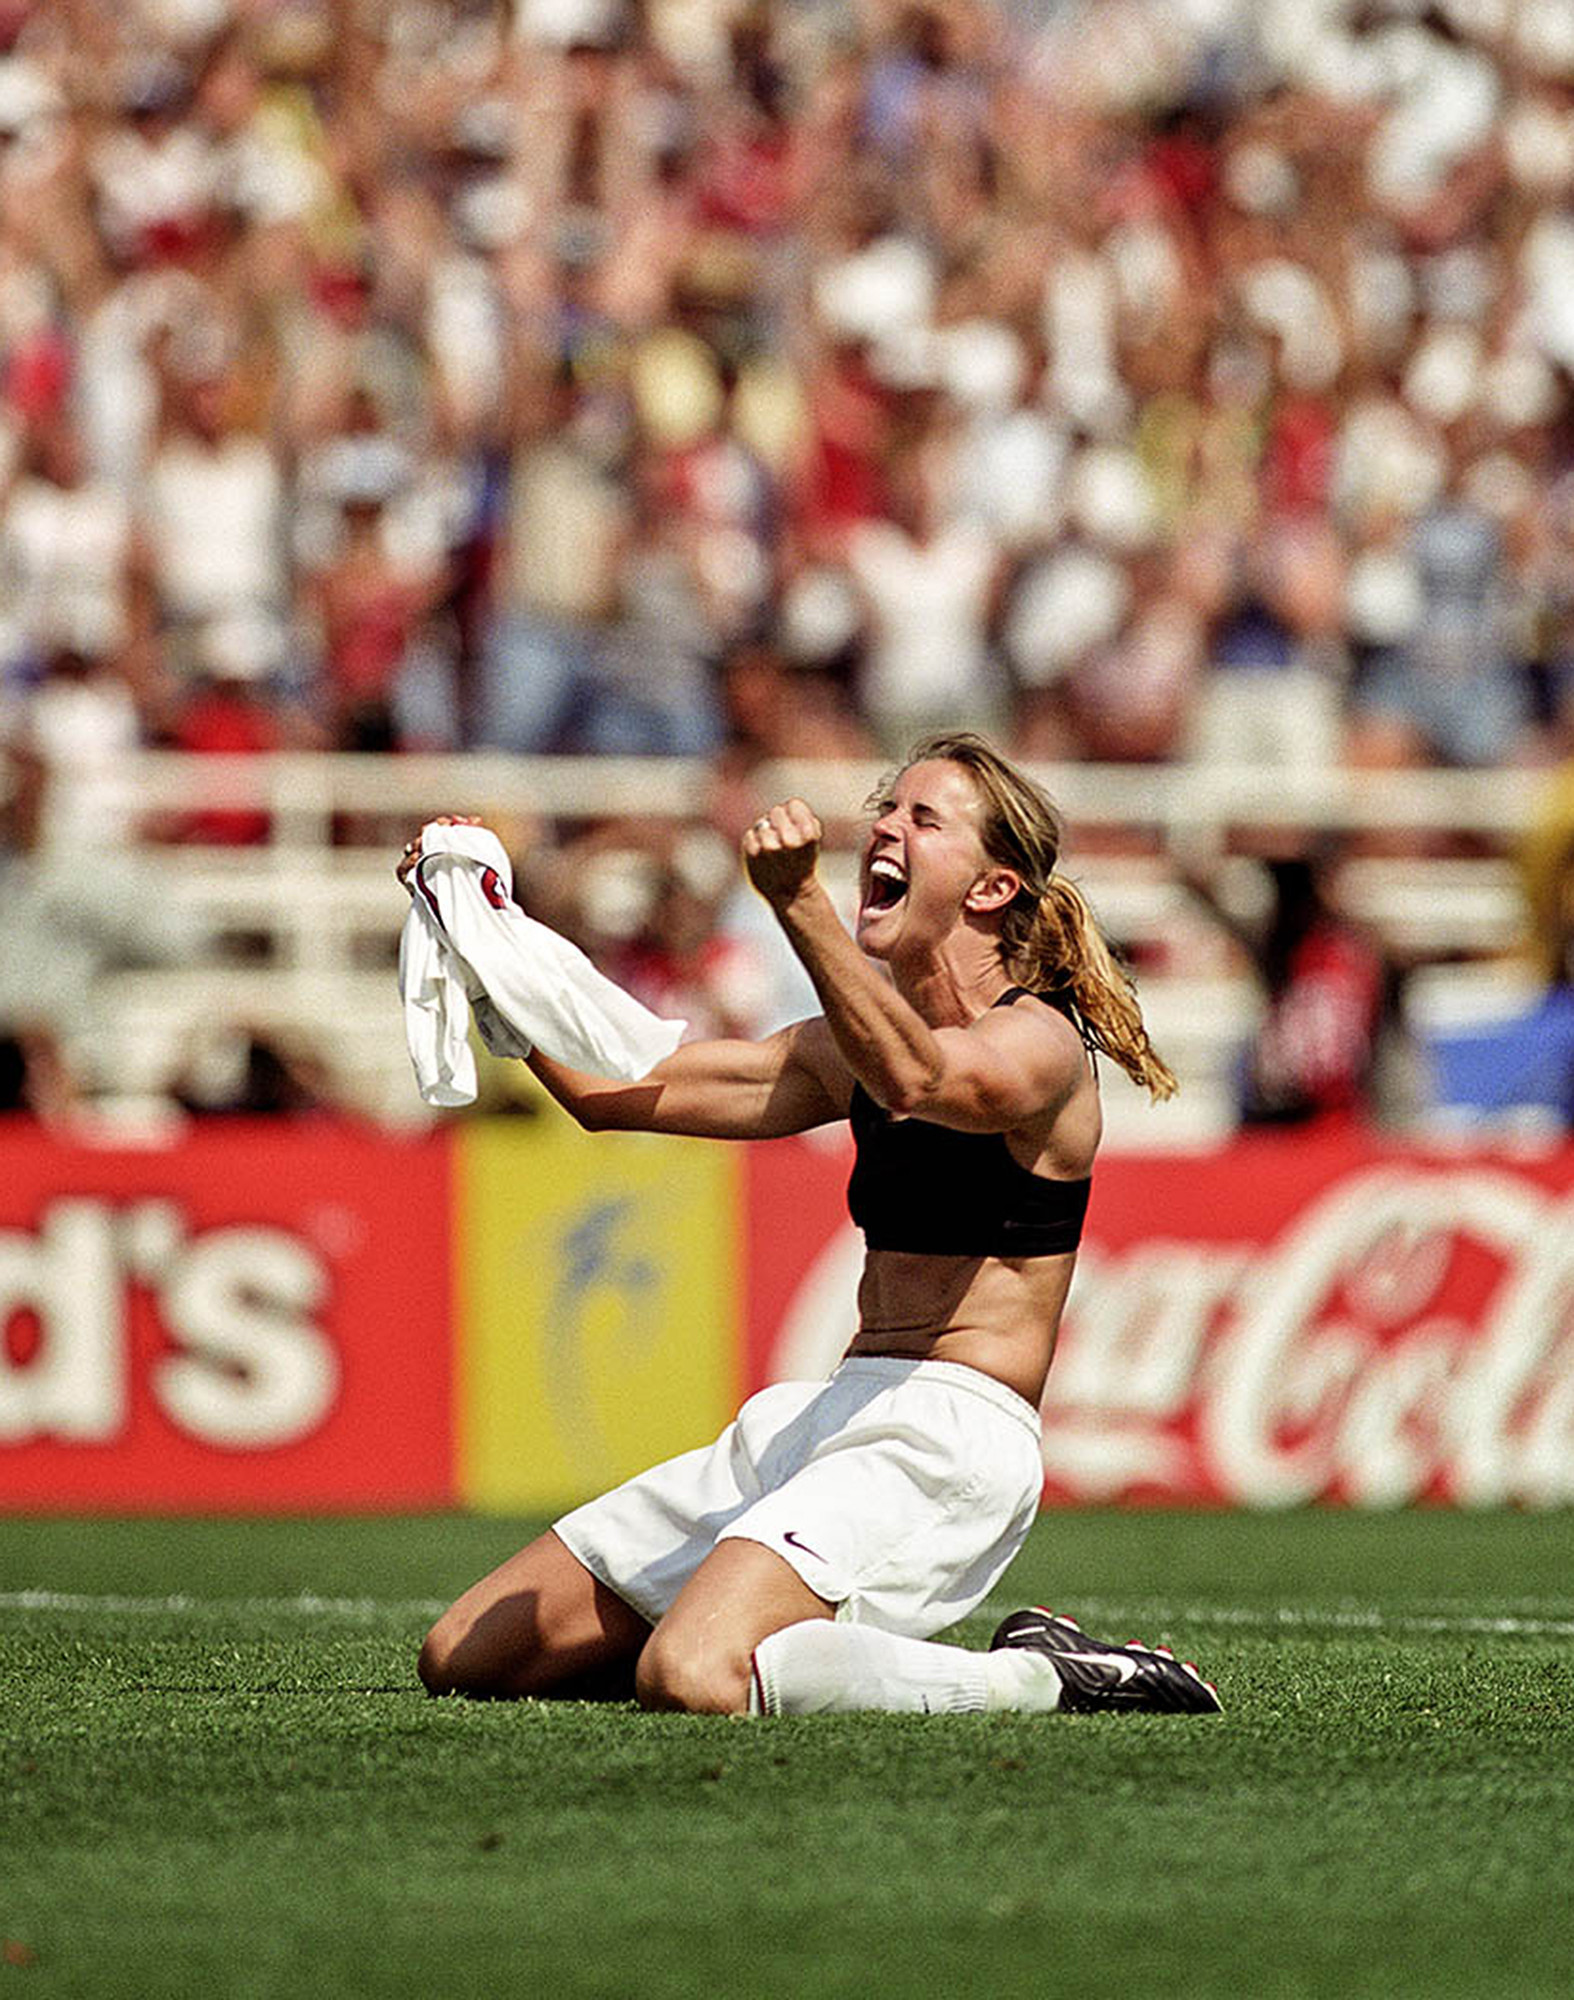 World champion Brandi Chastain exults after scoring the winning goal in the United States' 5-4 penalty-kick victory over China in the World Cup final in front of 90,185 at the Rose Bowl in 1999.